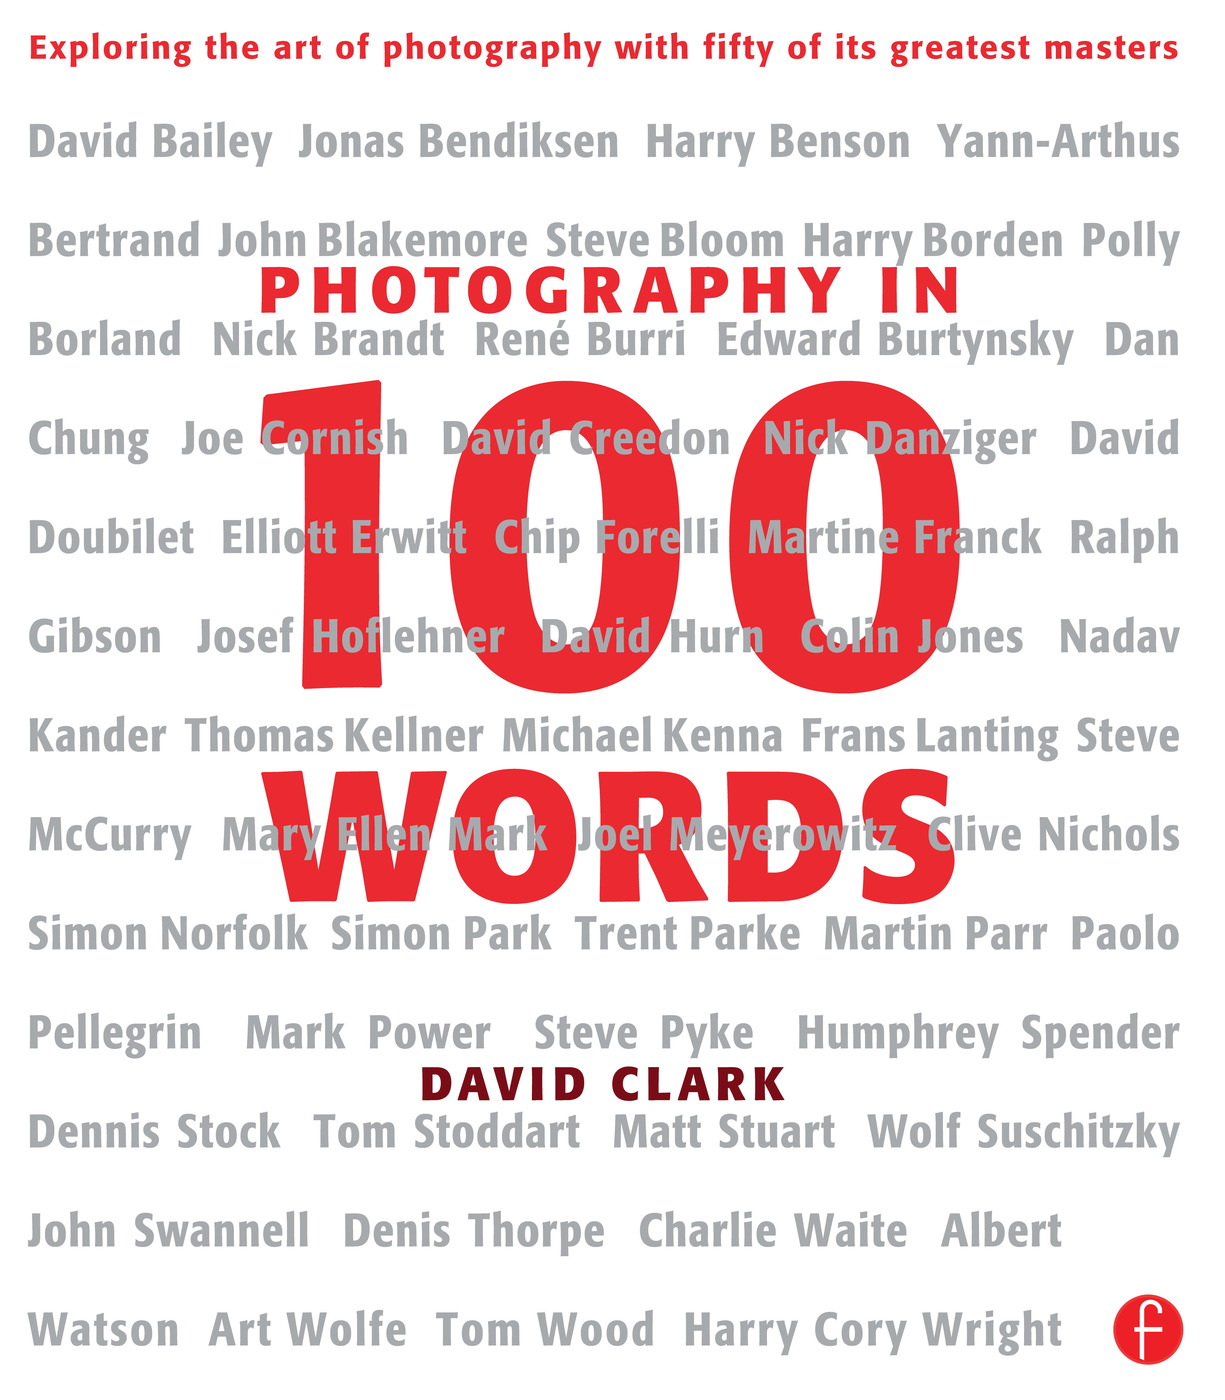 Photography in 100 Words: Exploring the Art of Photography with Fifty of its Greatest Masters book cover